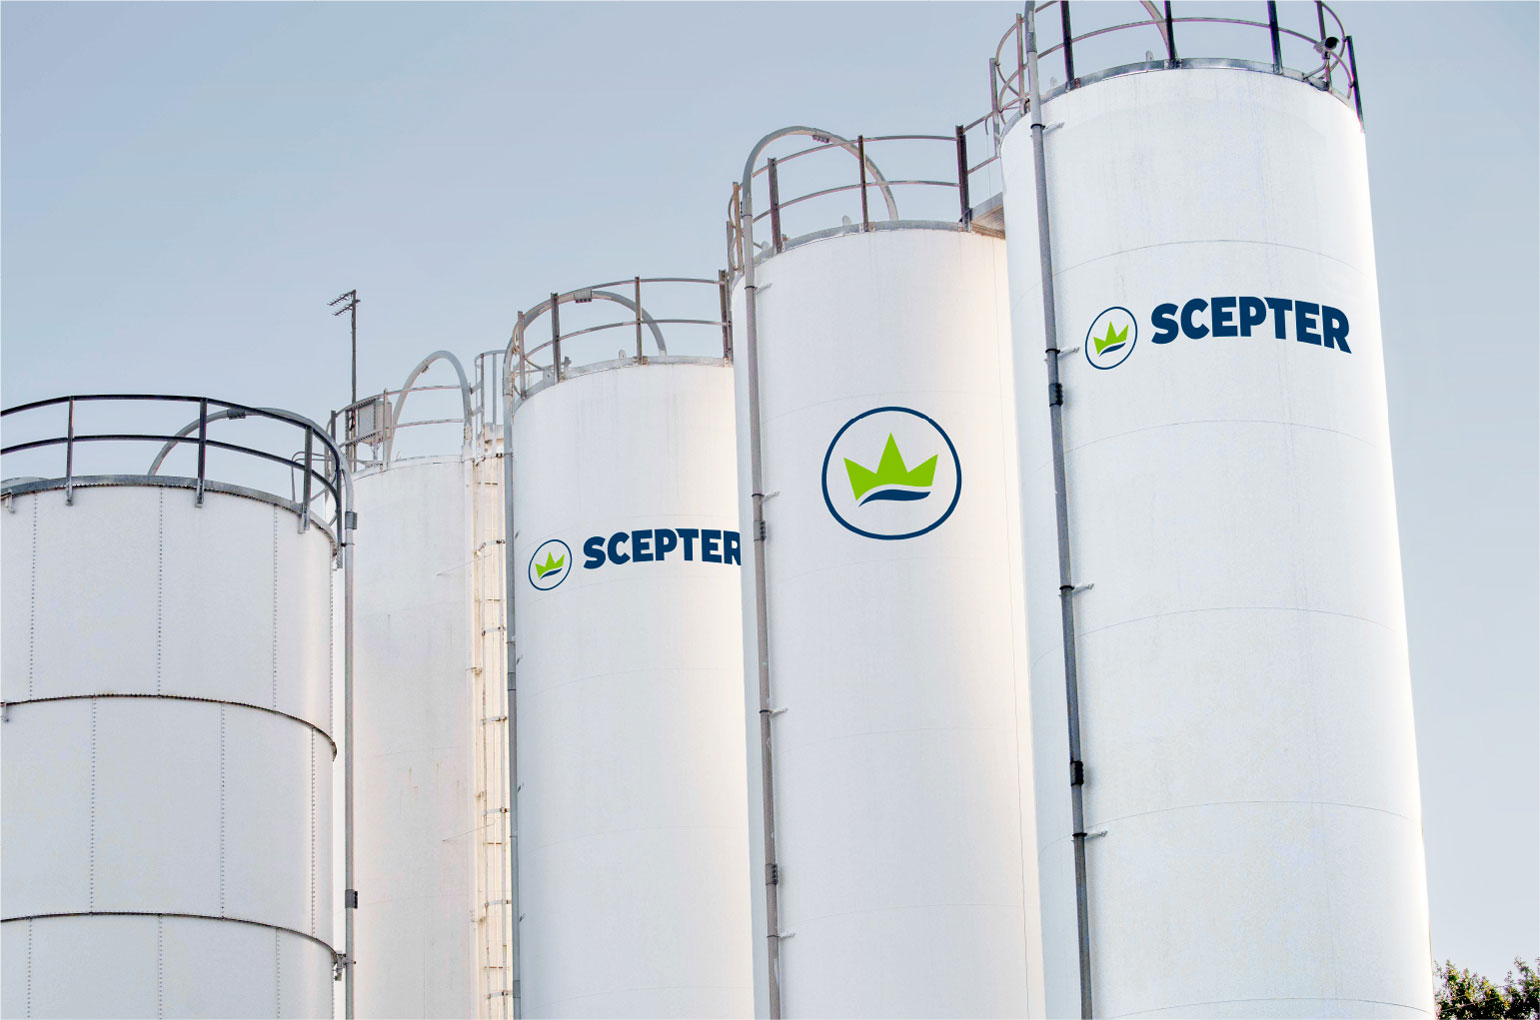 Scepter Industrial Signage